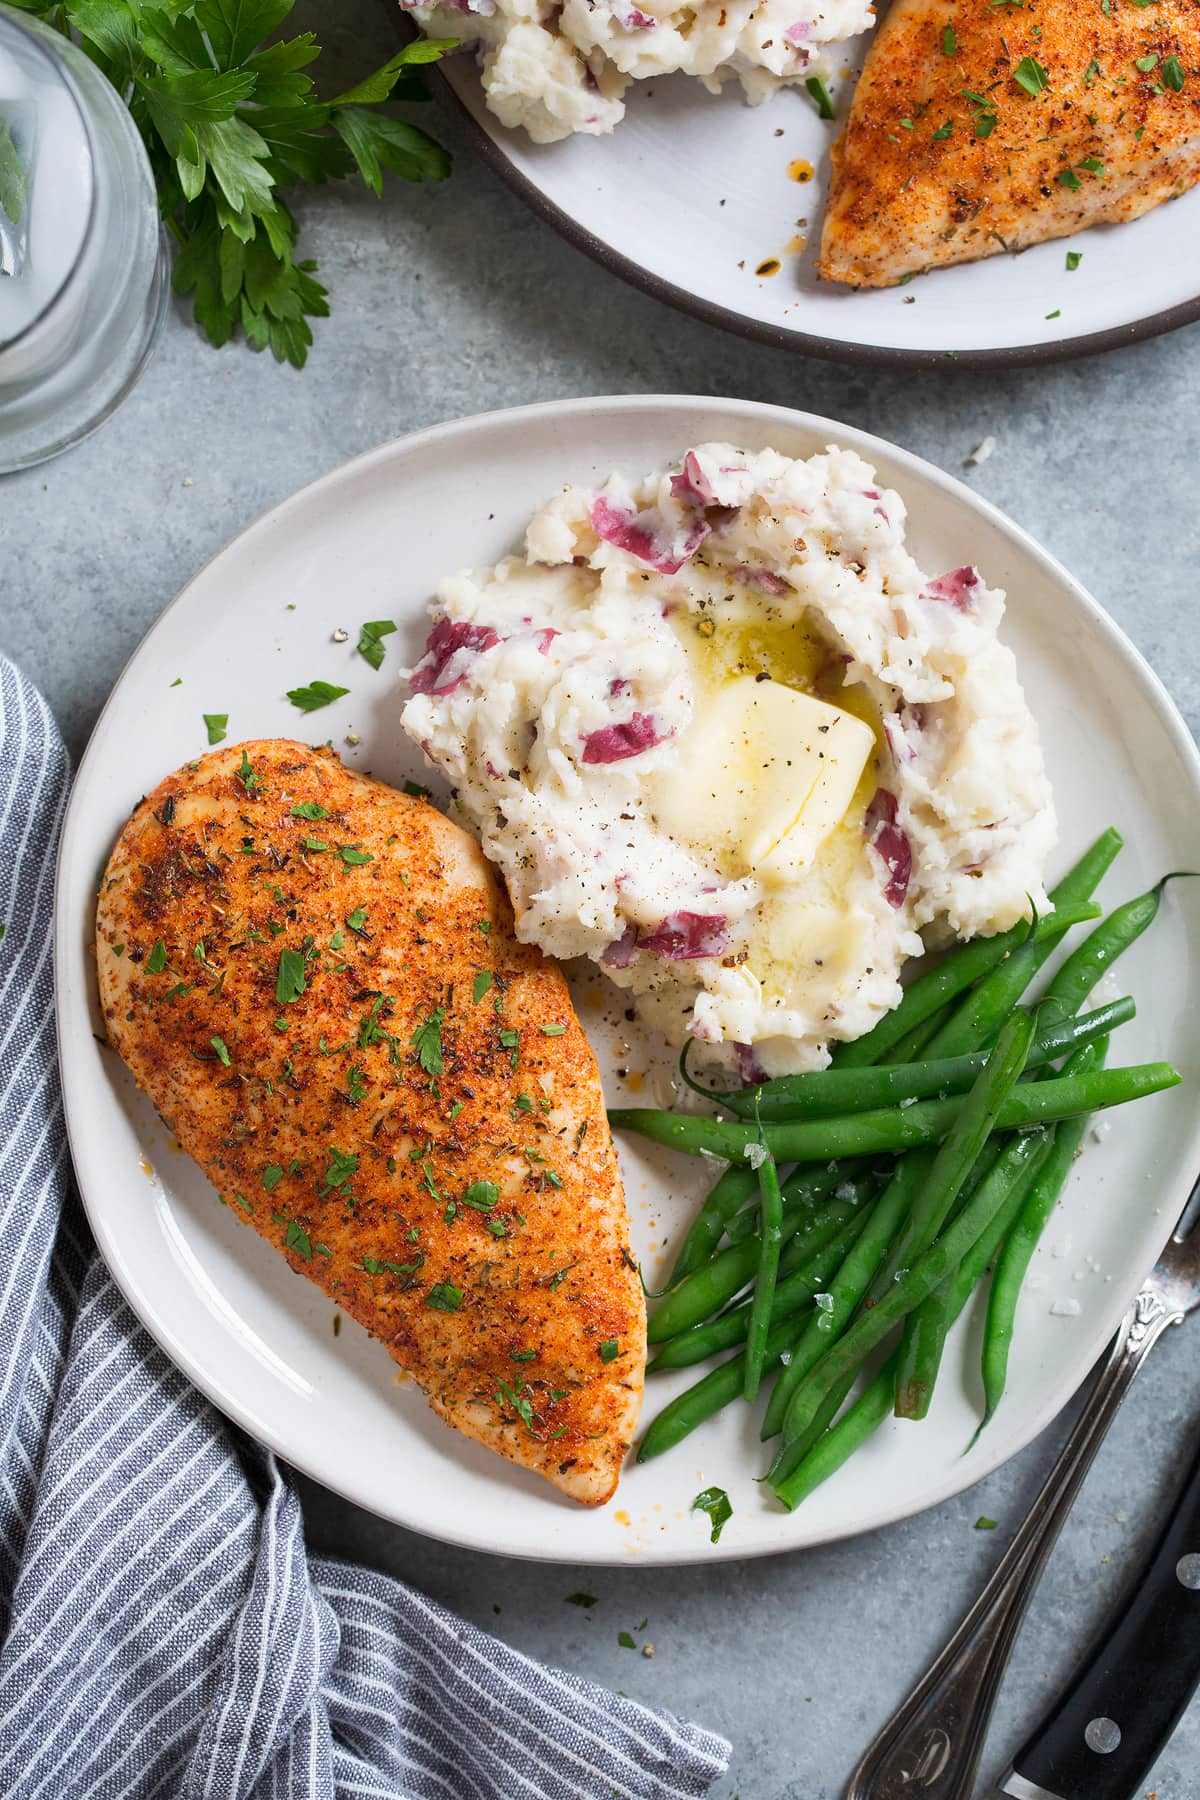 Overhead image of a seasoned baked chicken breast on a white serving plate along with a side of mashed potatoes and steamed green beans.